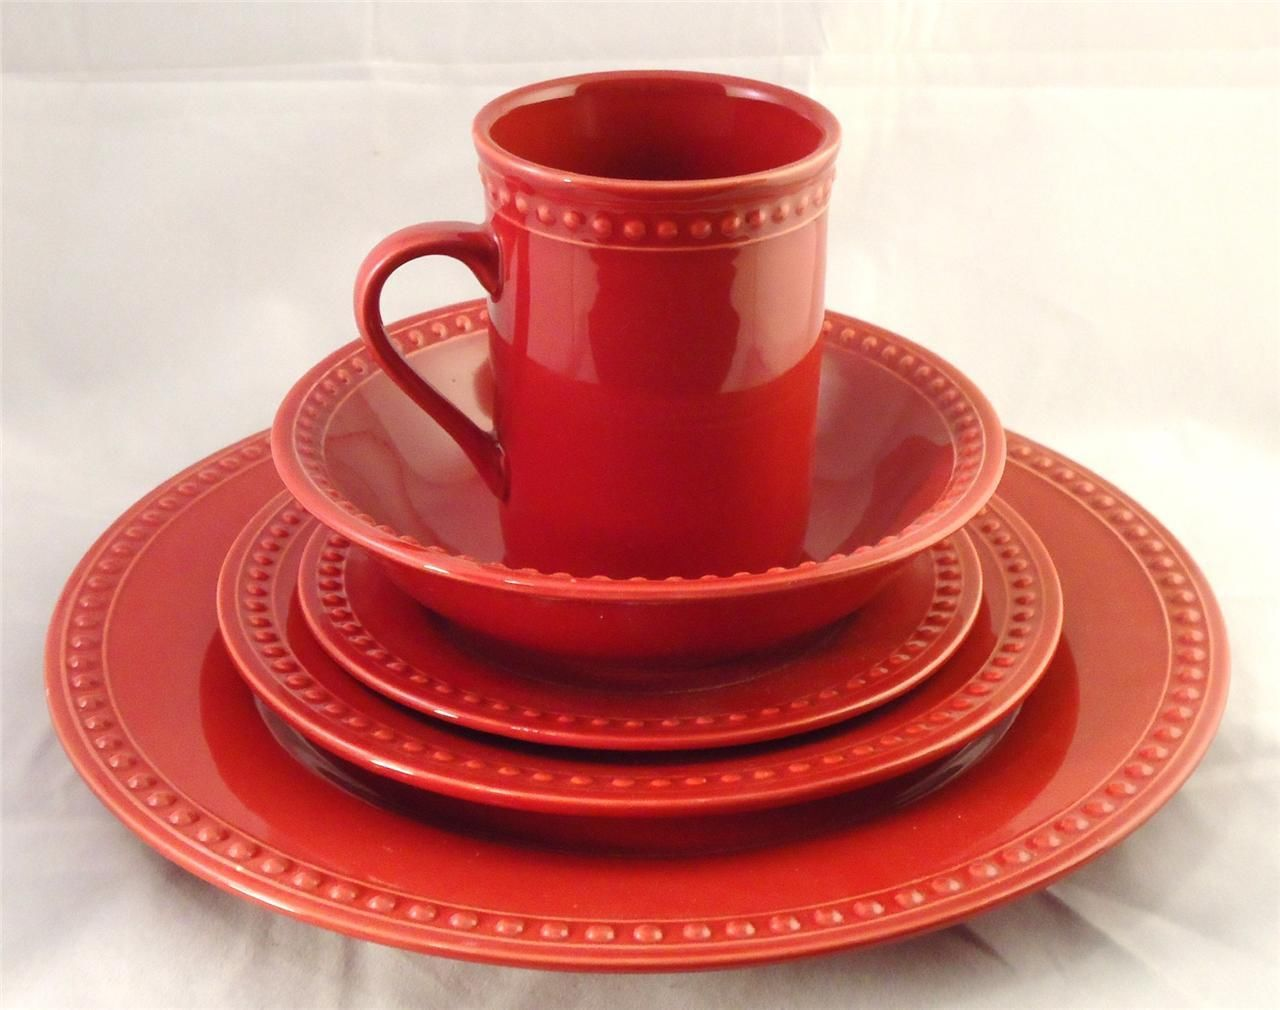 JC PENNEY Home Dinnerware 5 Piece Place Setting for 6 Red Fall \u0026 Holiday Table & JC PENNEY Home Dinnerware 5 Piece Place Setting for 6 Red Fall ...